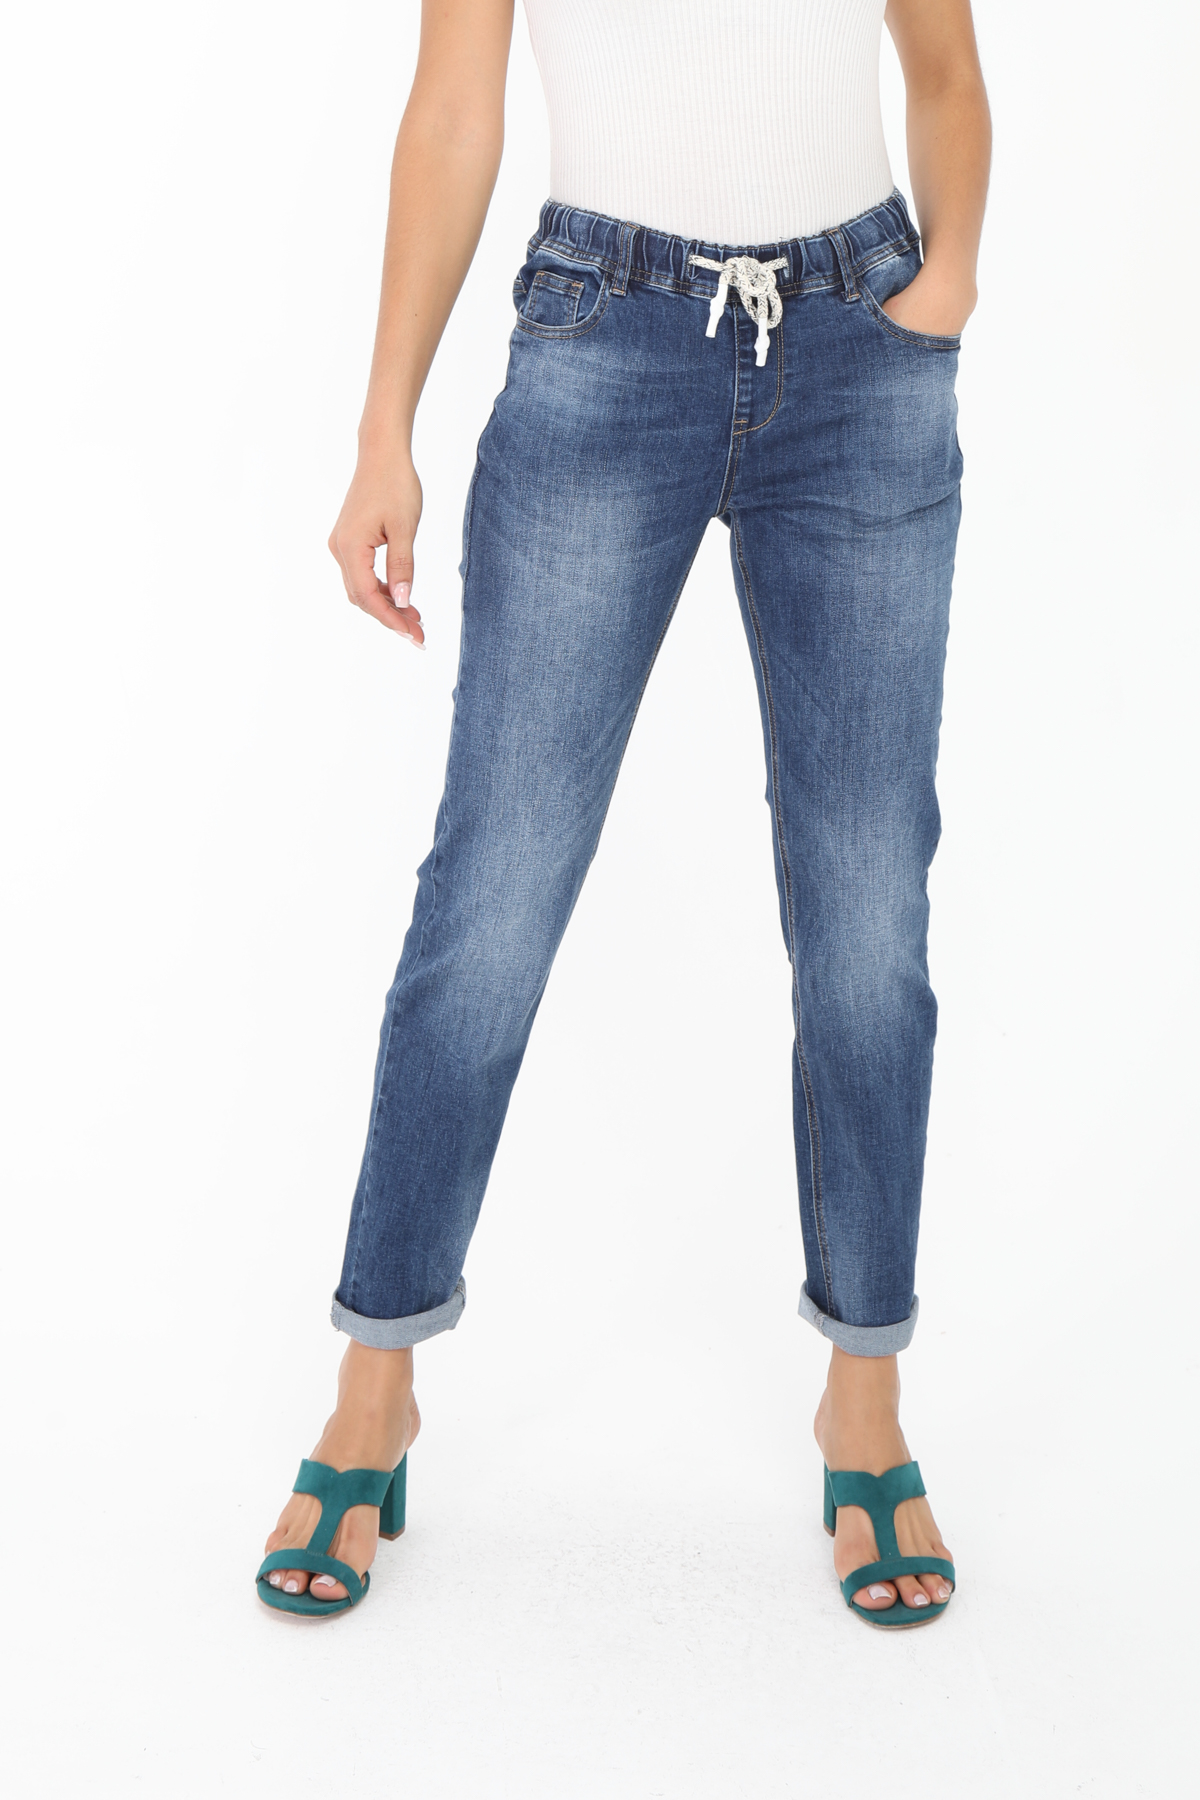 Jeans Femme Bleu Simply Chic  Q1841-2 #c eFashion Paris